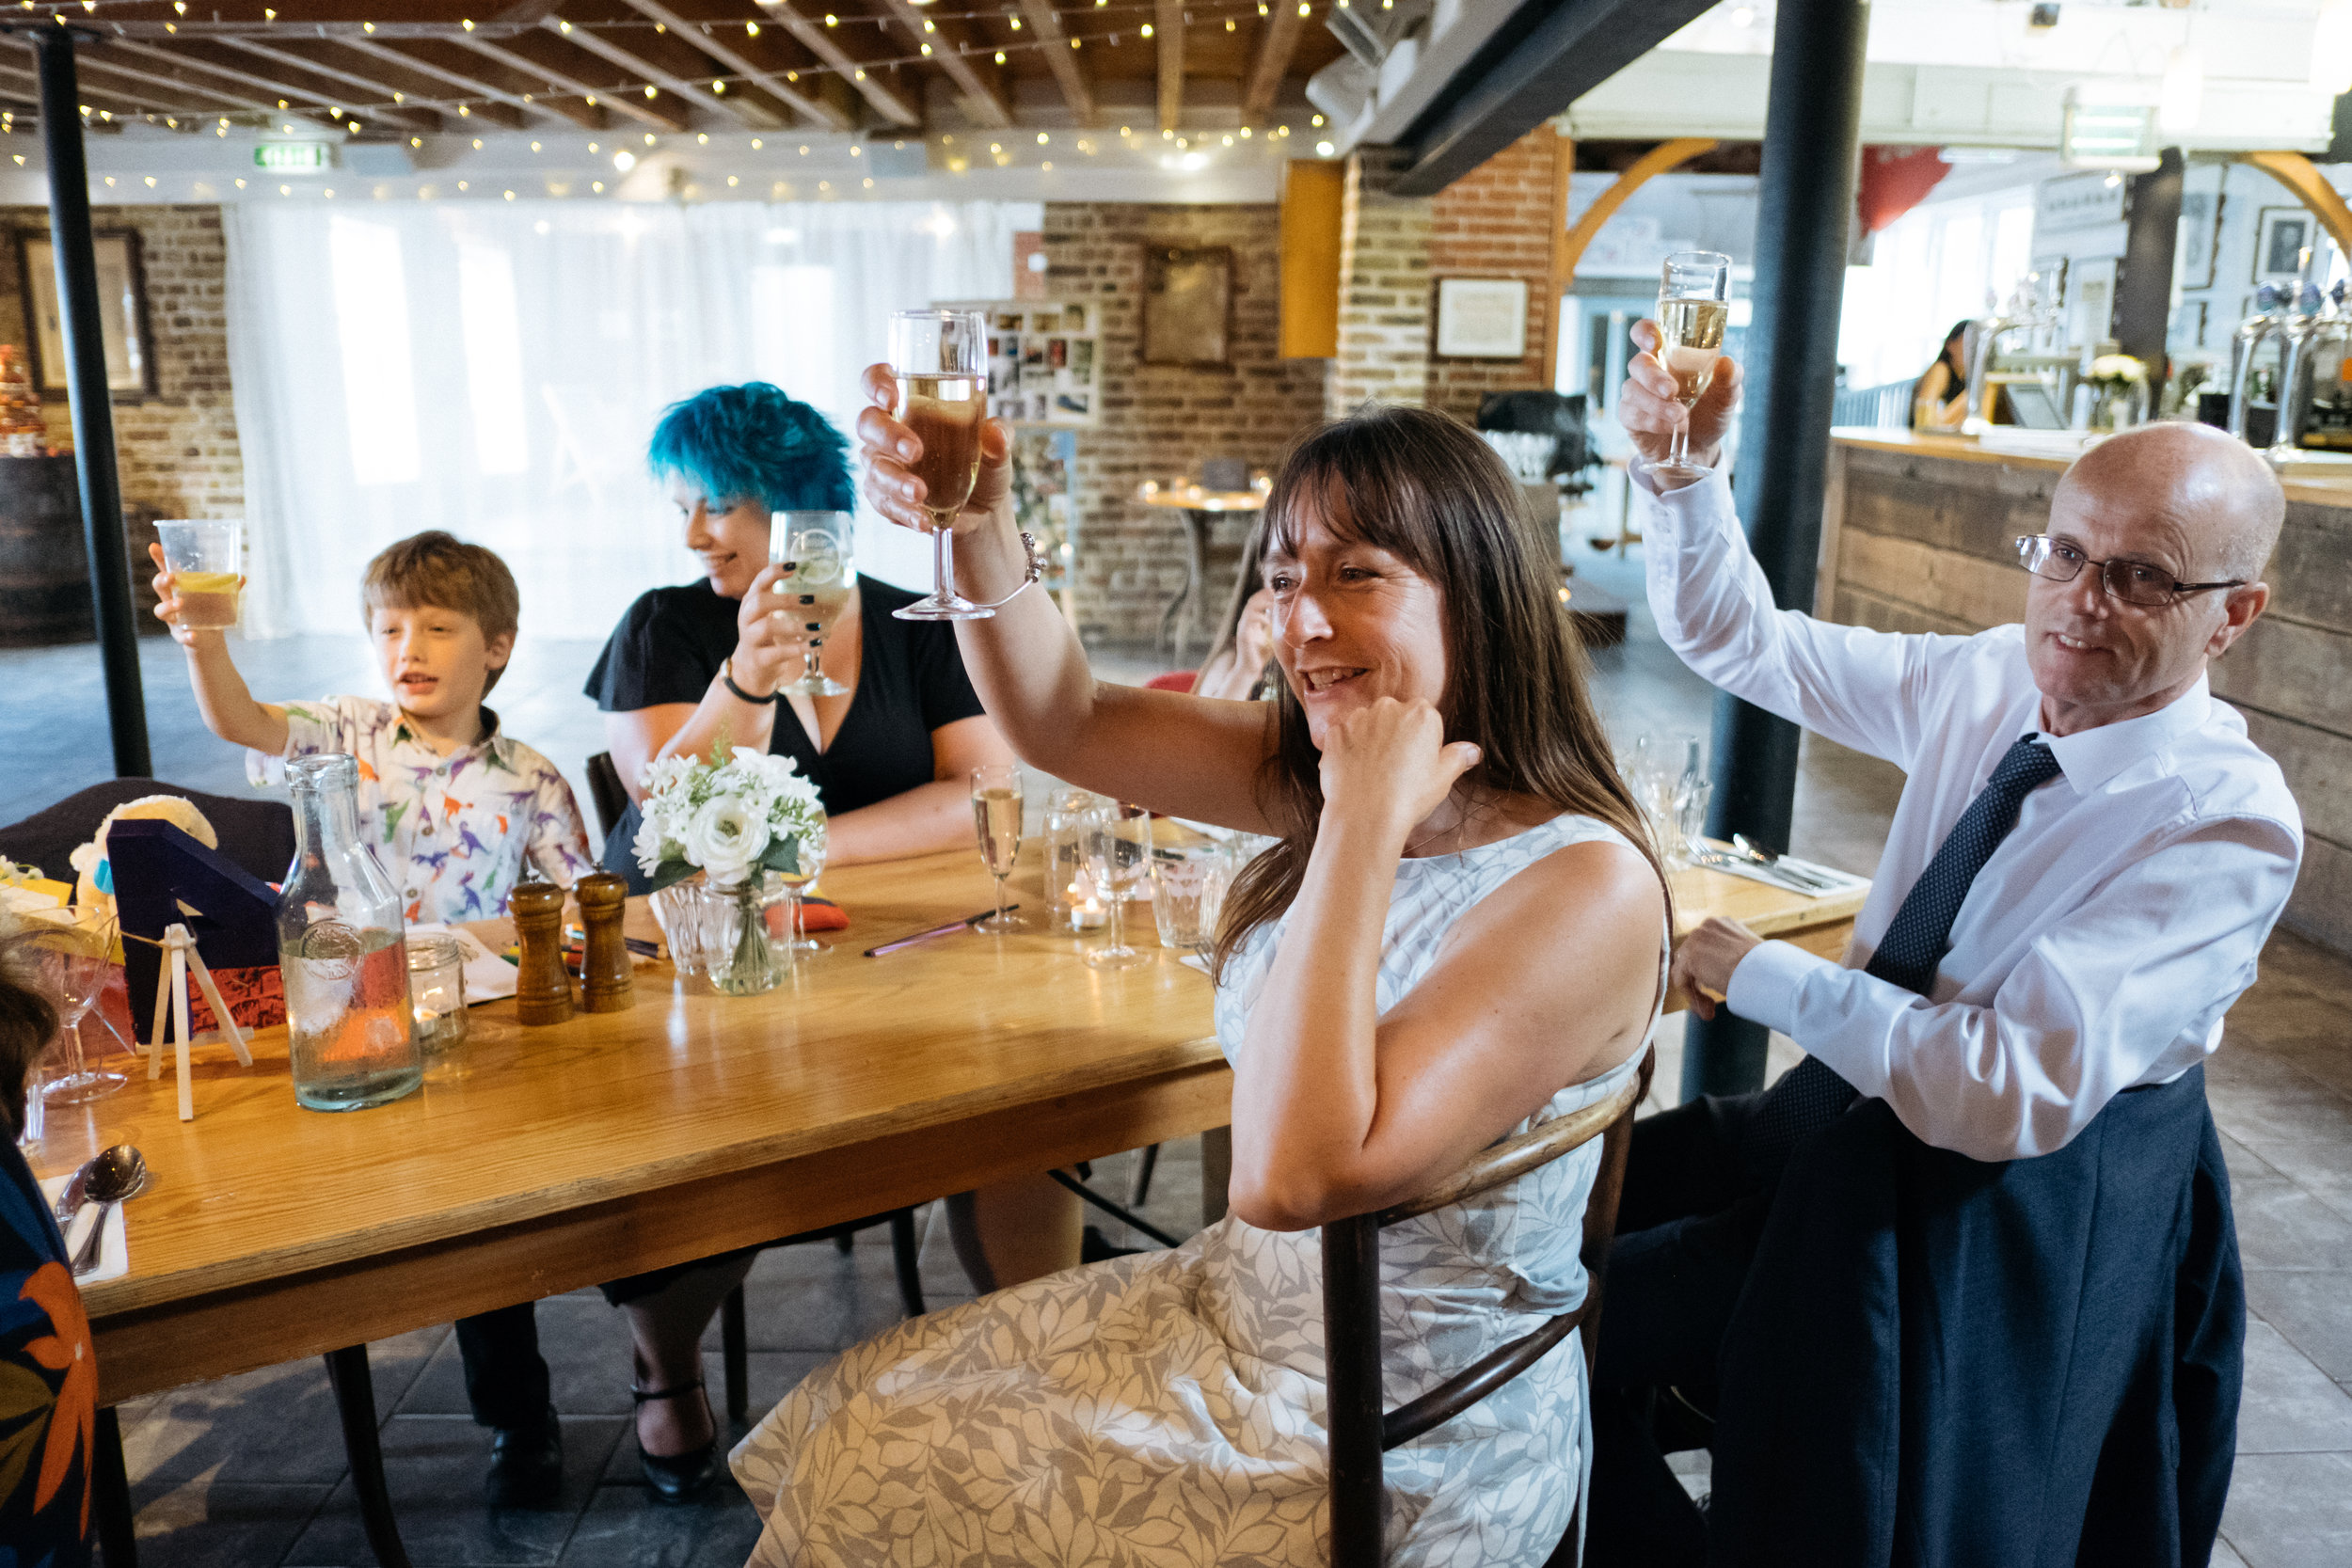 Raising a glass to the bride and groom at East Quay wedding venue